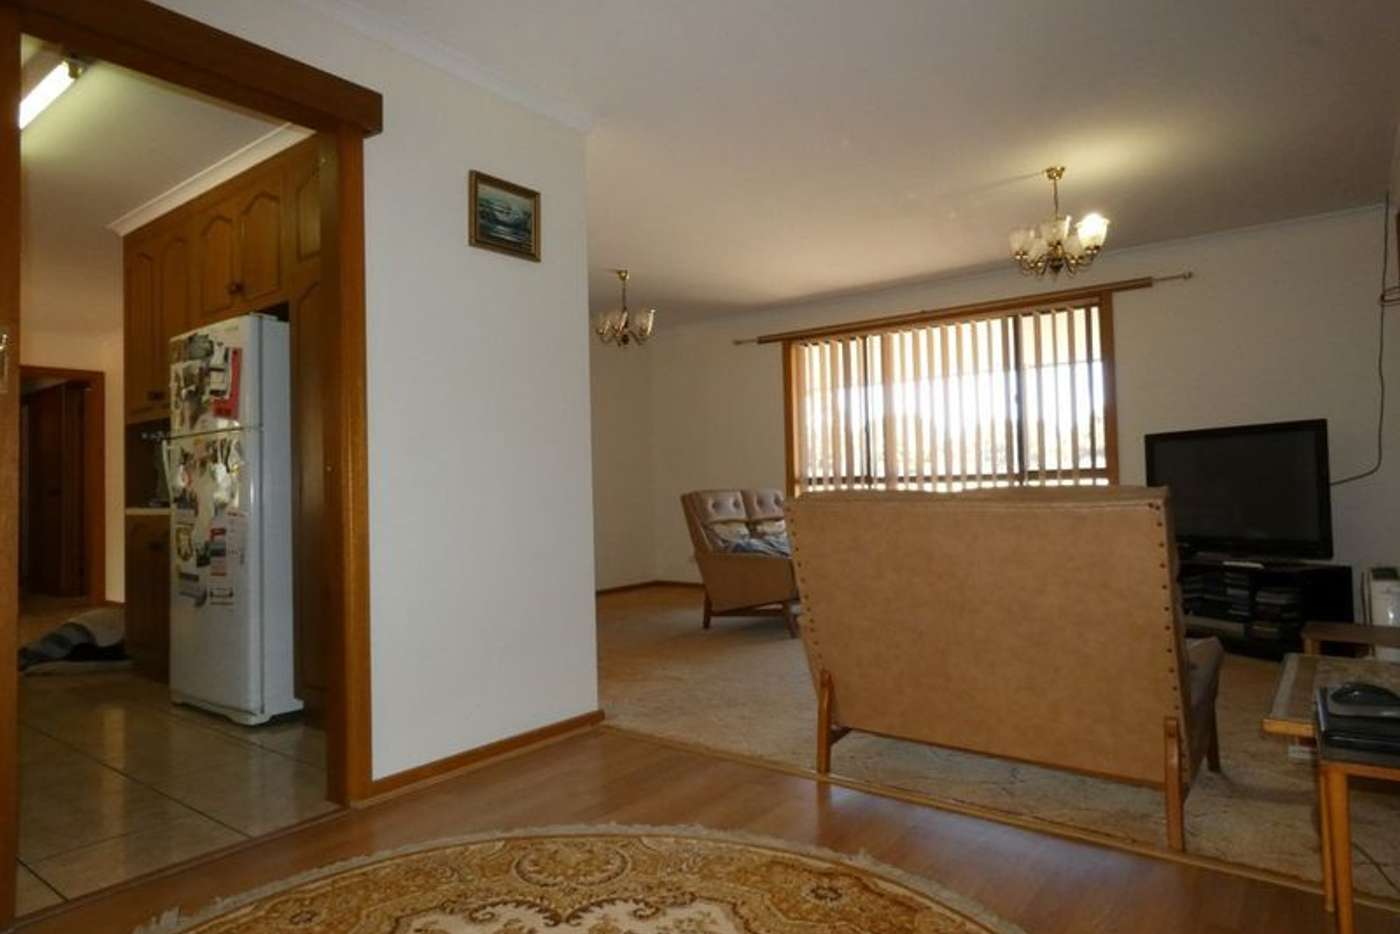 Sixth view of Homely house listing, 3 Park Terrace North, Edithburgh SA 5583